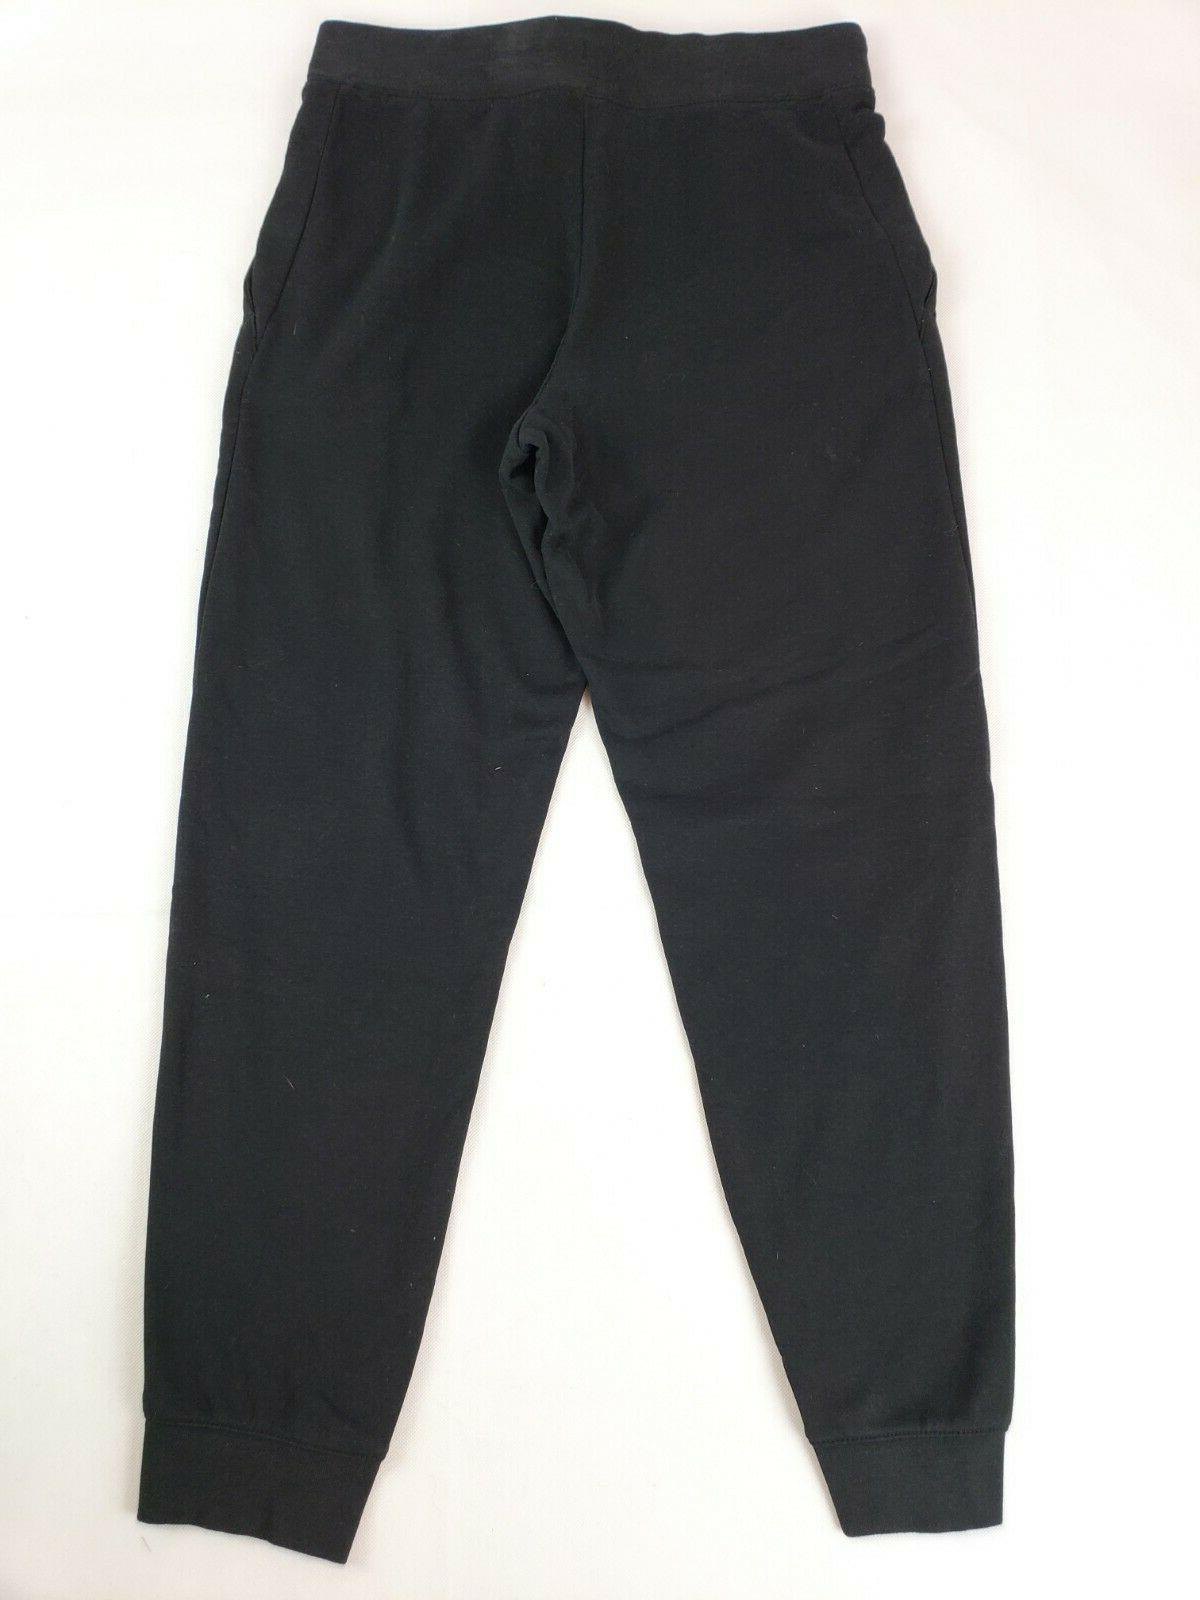 NIKE Sportswear Girls' Pants, Black/White,